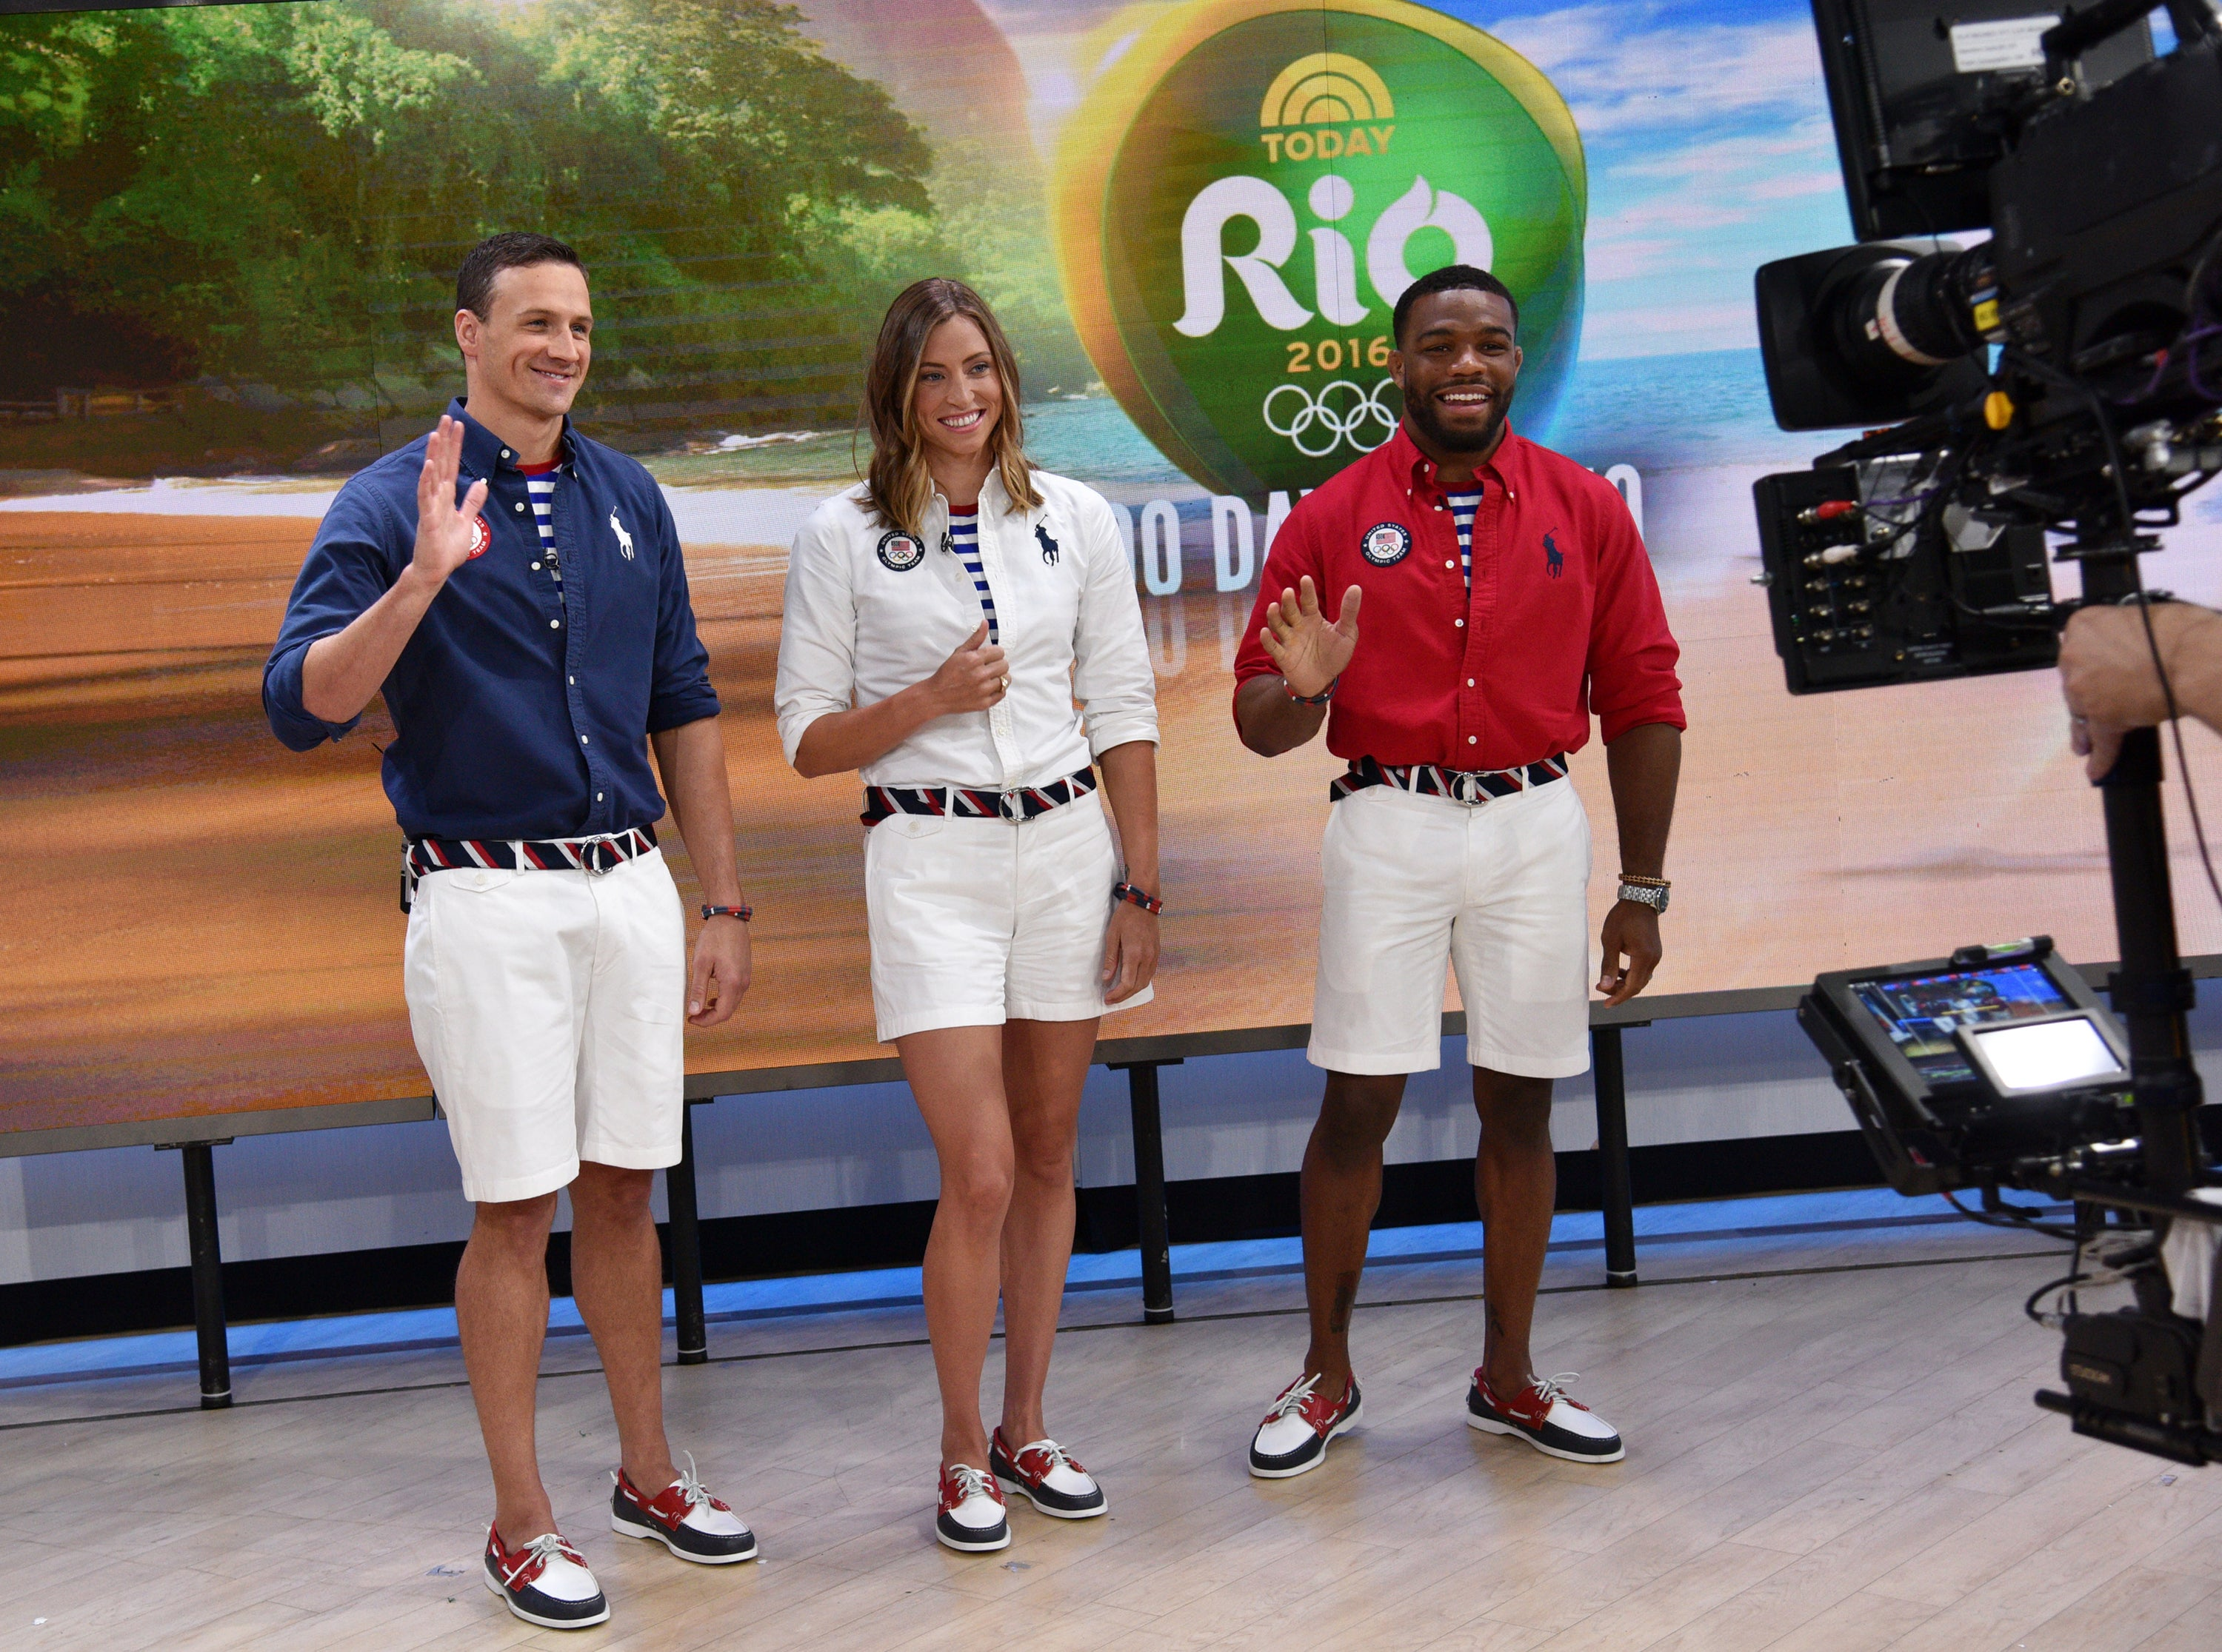 """In this image released by NBC, U.S. Olympic athletes, from left, Ryan Lochte, Haley Anderson and Jordan Burroughs, model Polo Ralph Lauren closing ceremony uniforms on the """"Today Show"""" in New York, Wednesday, April 27, 2016. (Photo by: Bryan Bedder/NBC)"""